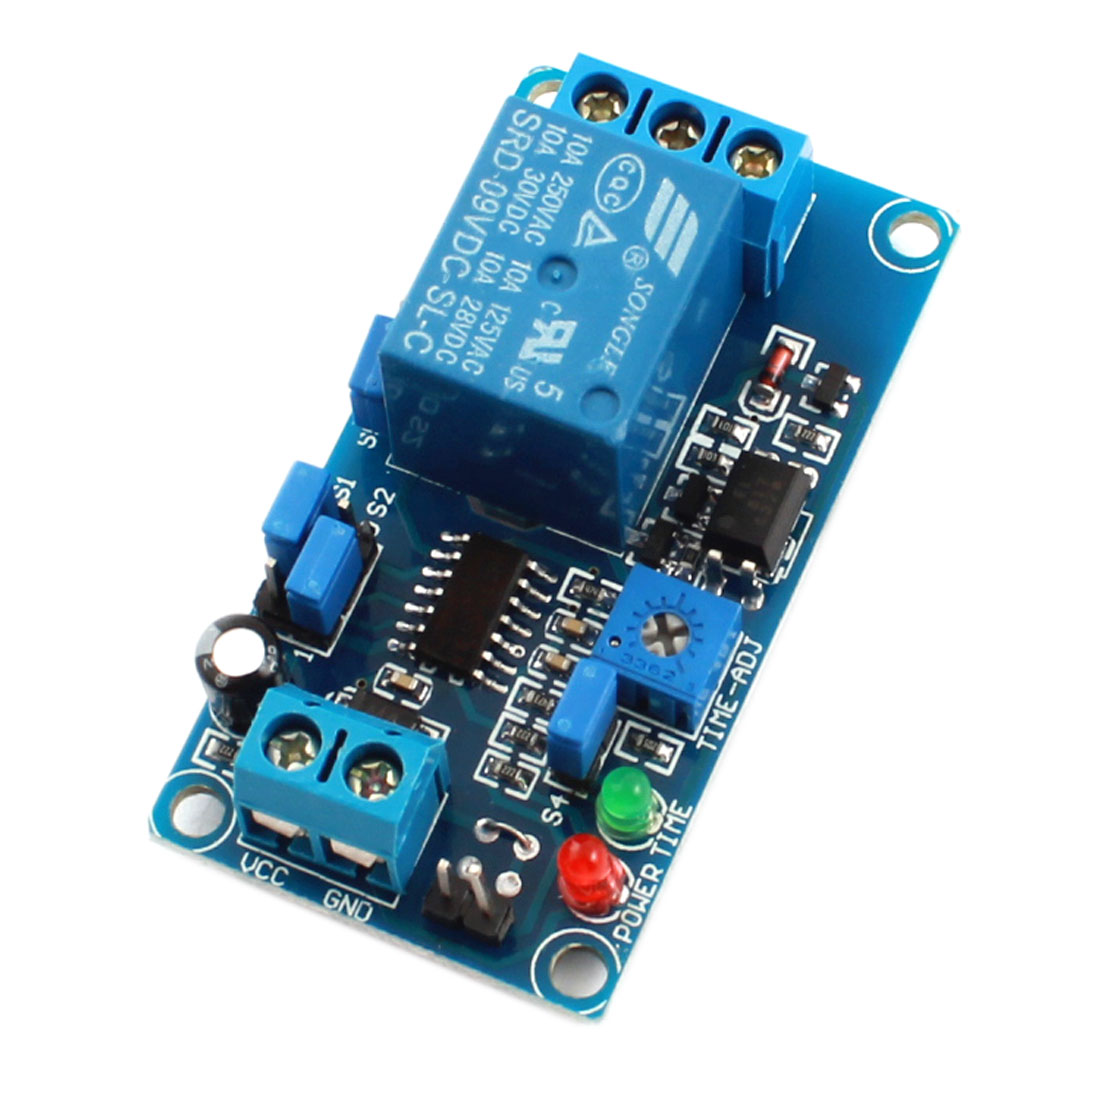 FC-31 DC 9V 1-Channel Optical Isolation Normal Close Trigger Delay PCB Circuit Relay Module Blue